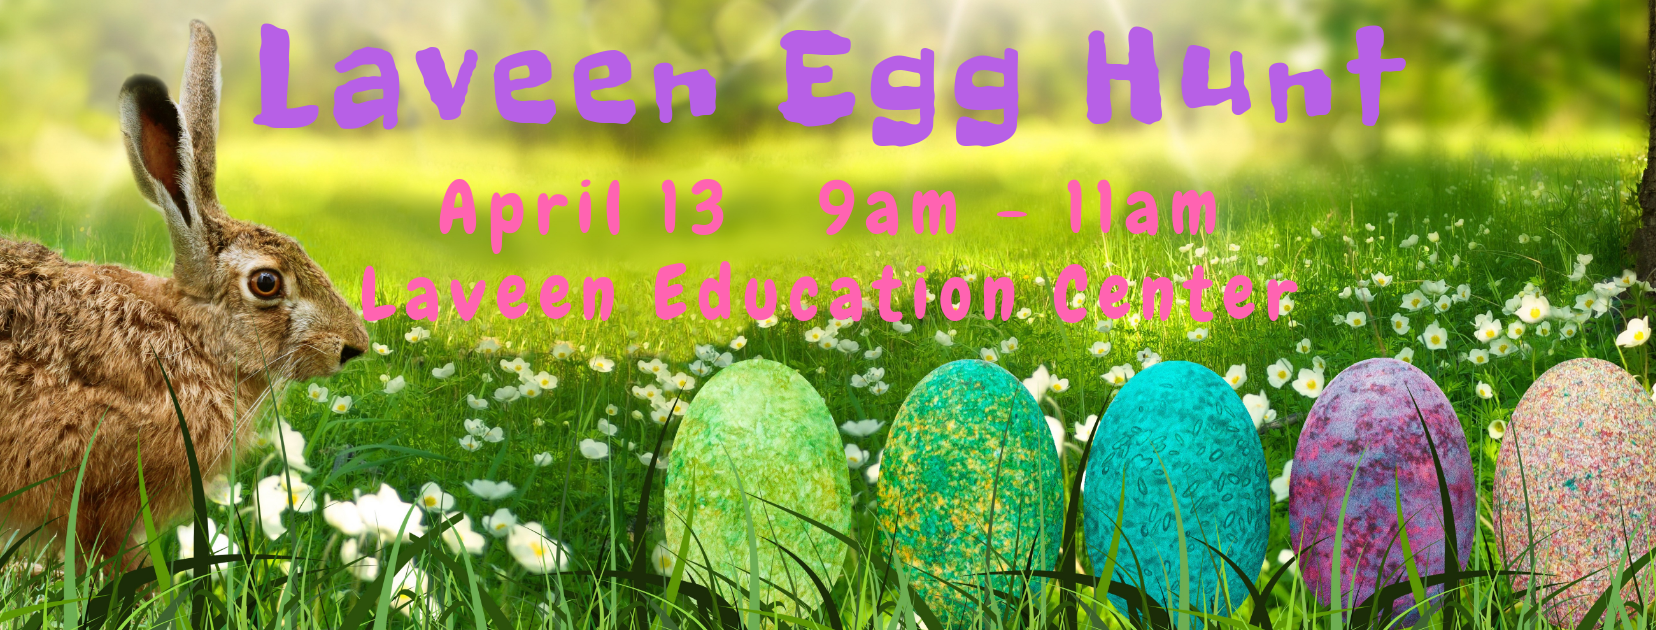 Laveen Egg Hunt